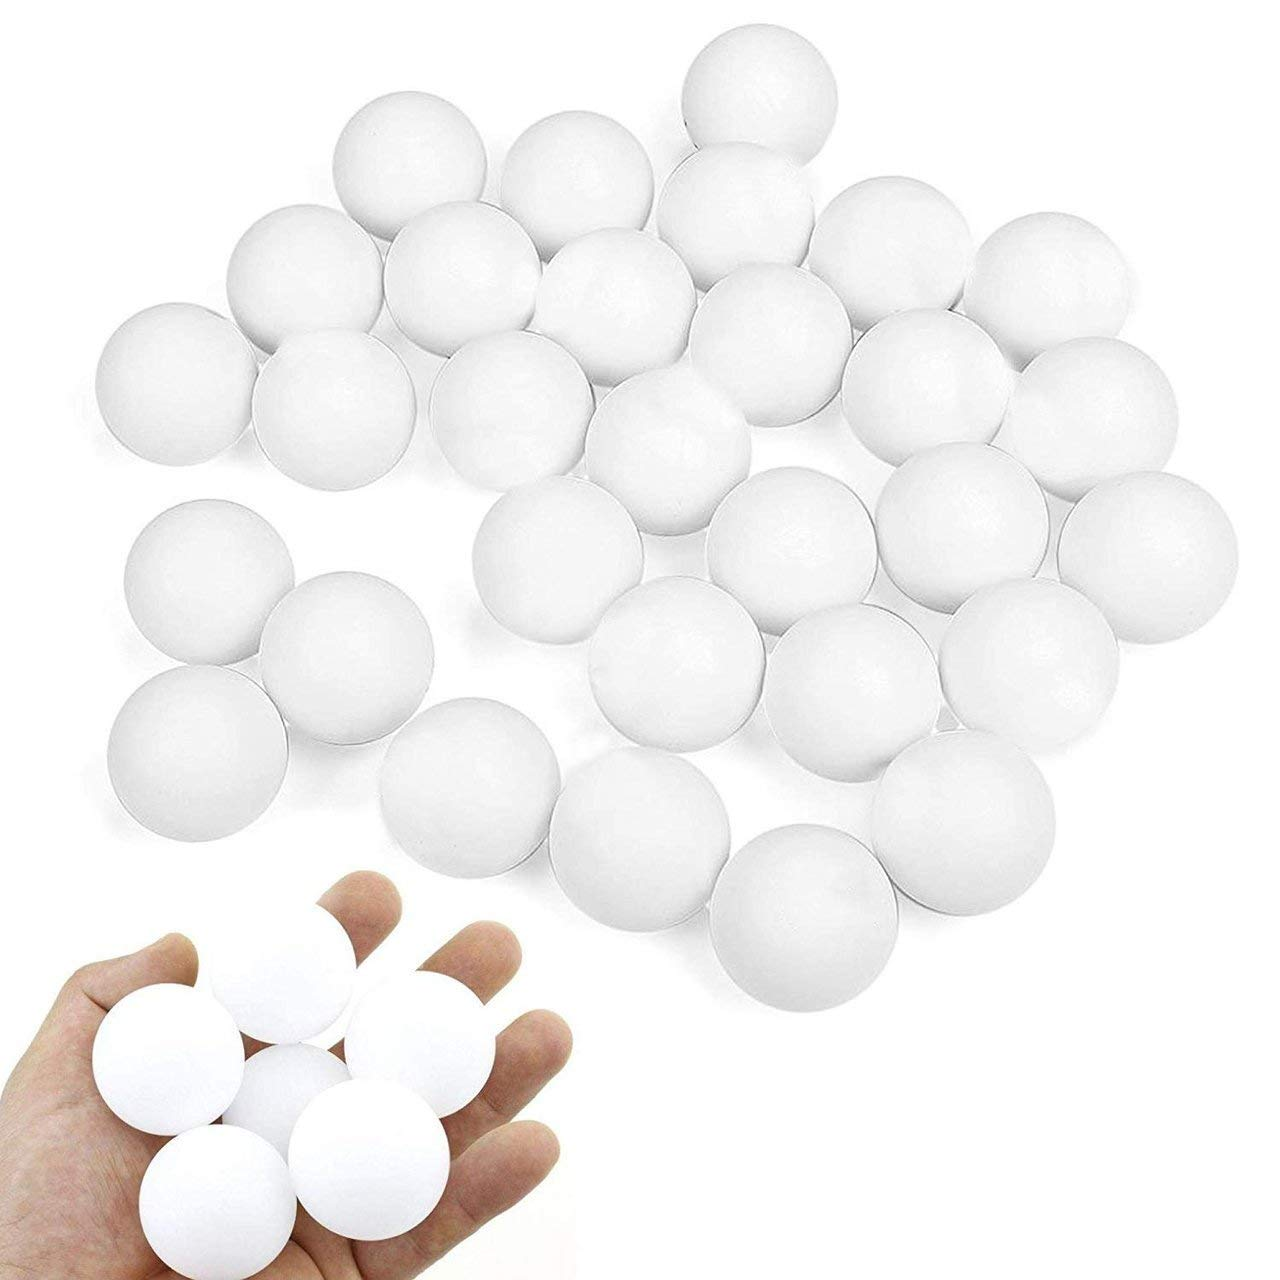 Totem World 1008 White Beer Pong Balls - 38mm Ping Pong Bulk Washable Plastic for Decoration, Crafts or Party Game Balls